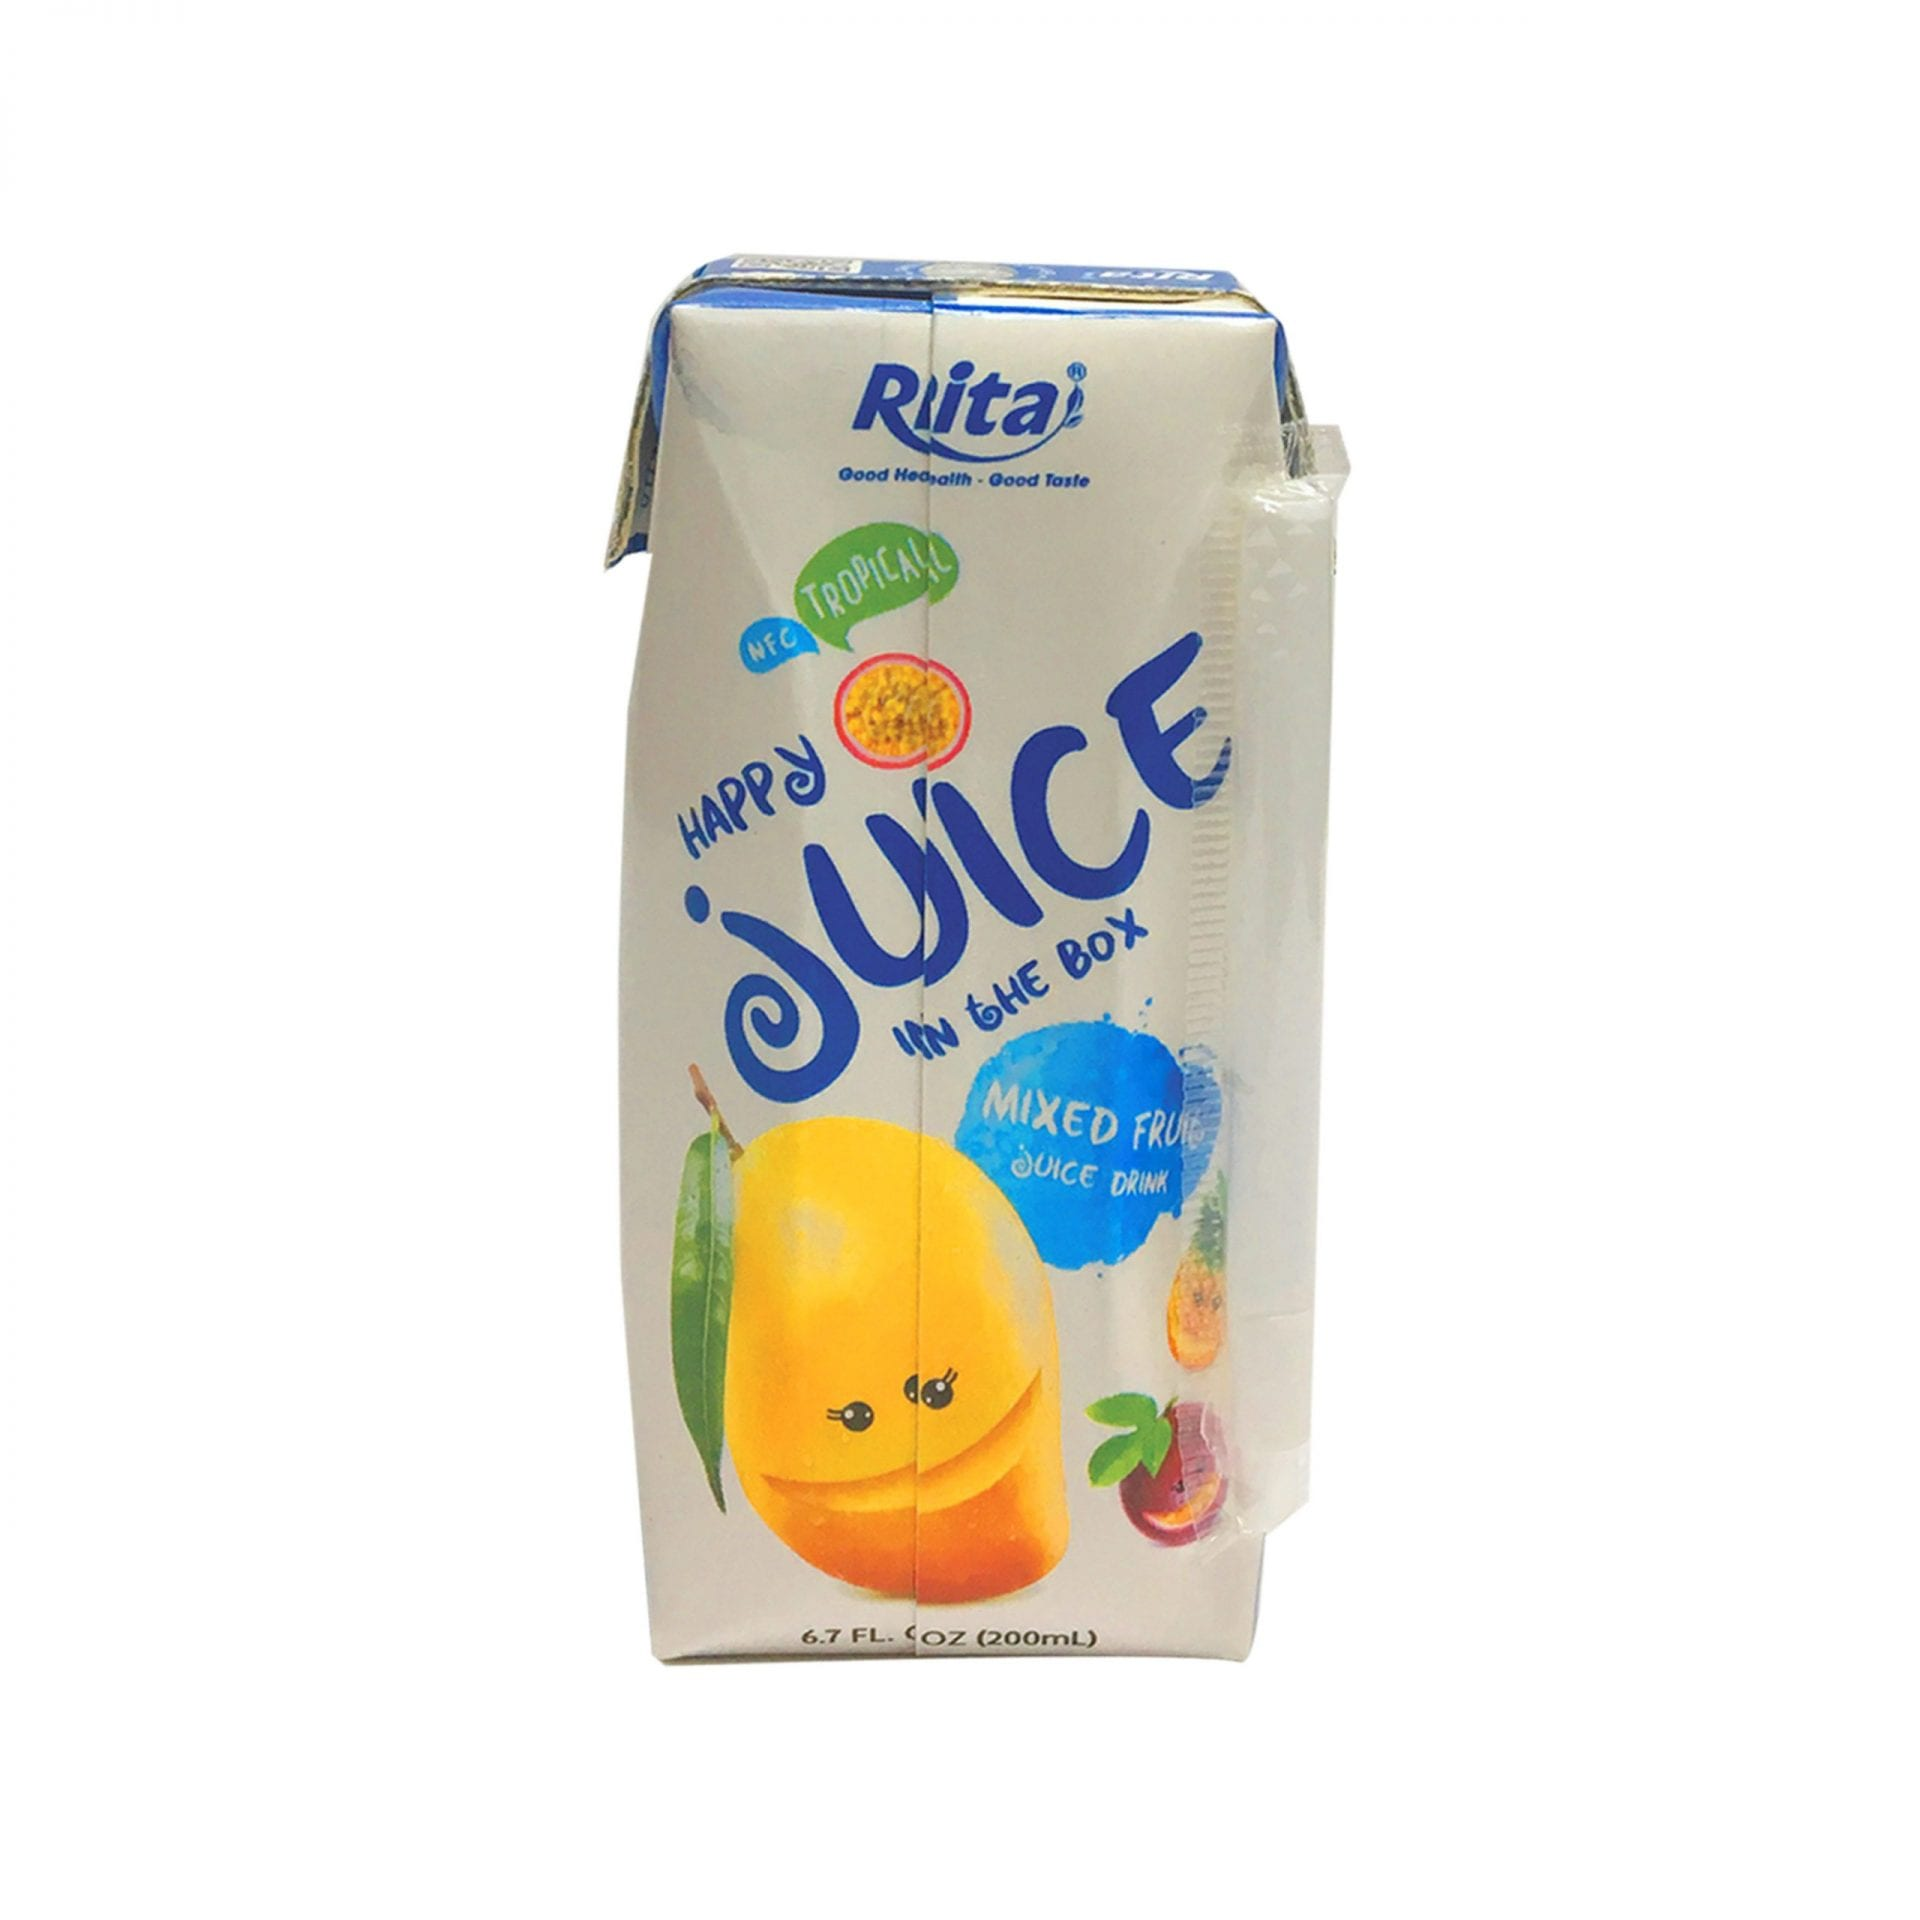 MIXED FRUIT JUICE DRINK Image